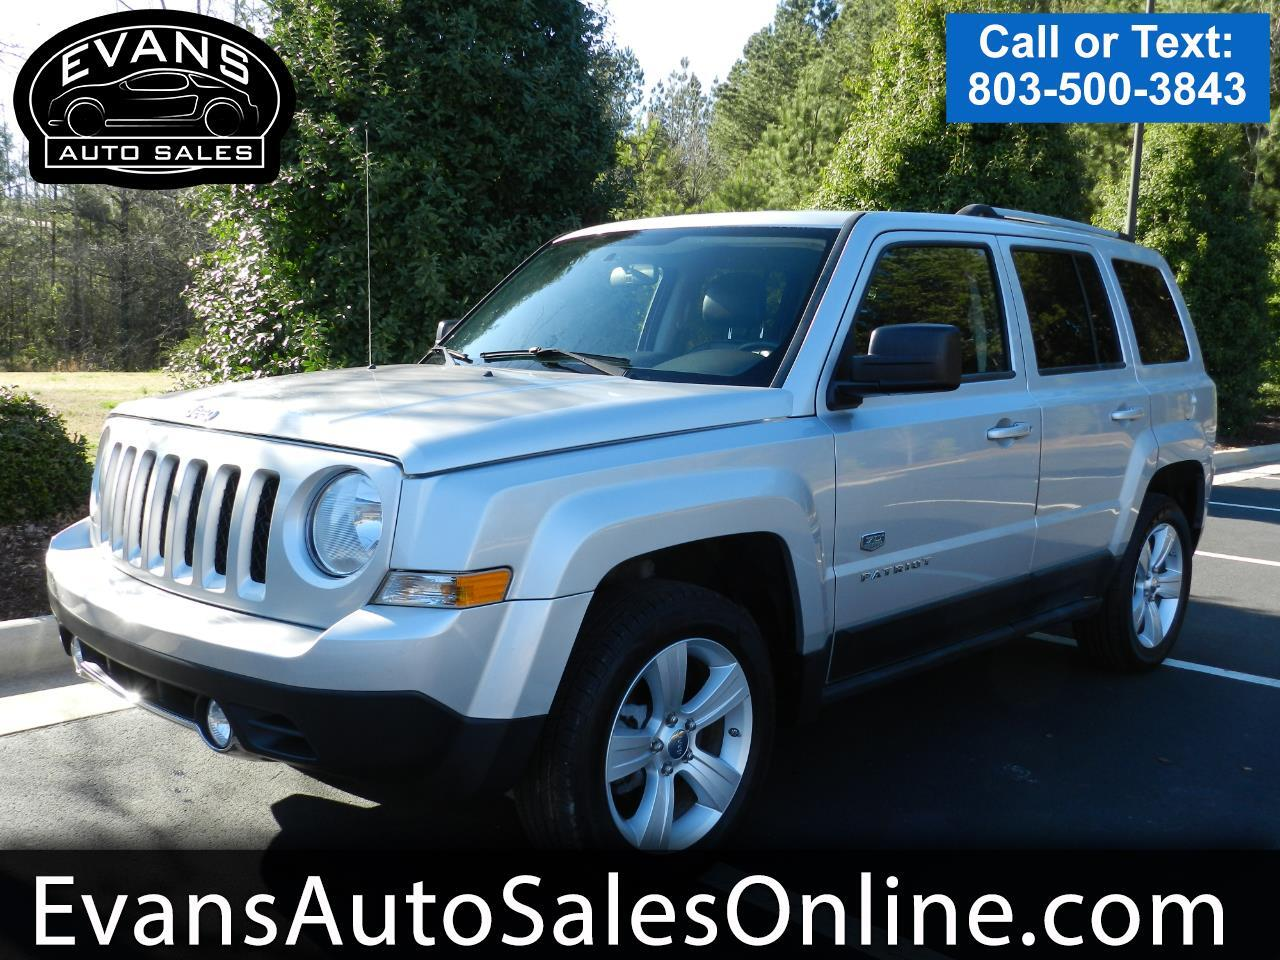 2011 Jeep Patriot FWD 4dr 70th Anniversary